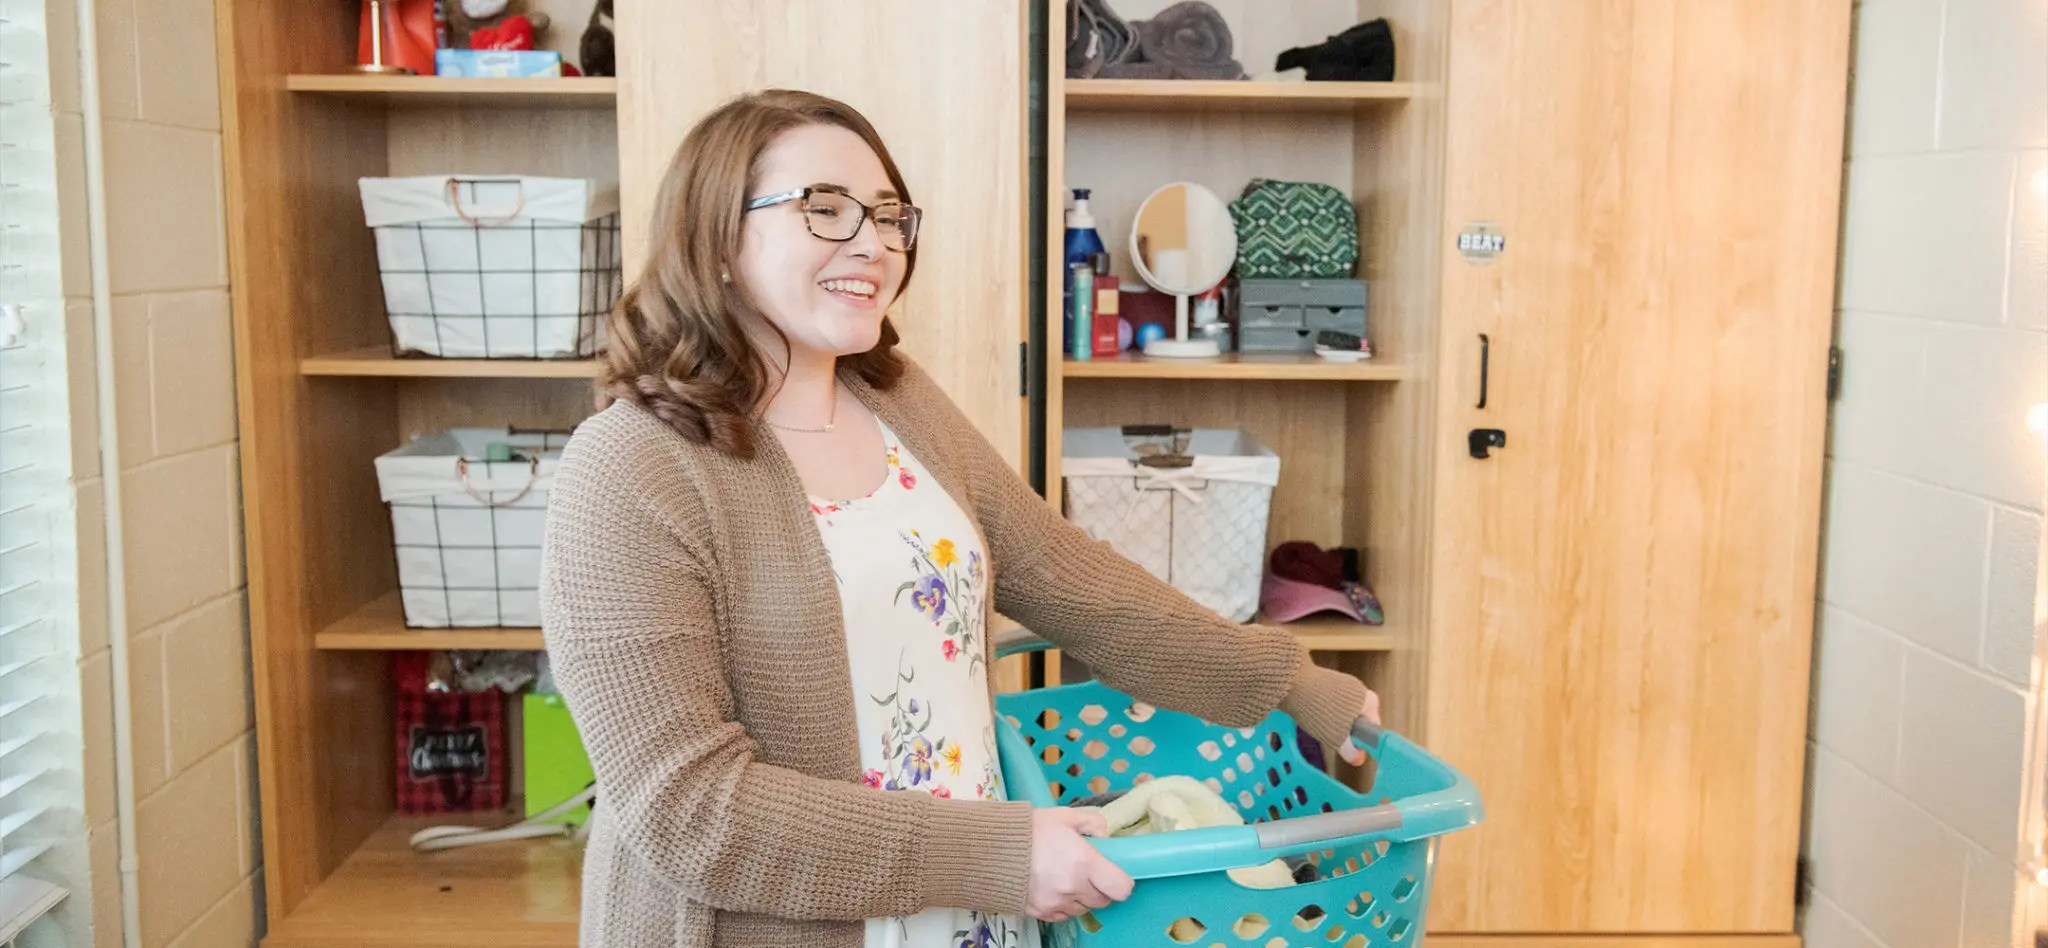 A female student in her dorm room with a basket of laundry in her arms and storage cabinets behind her.